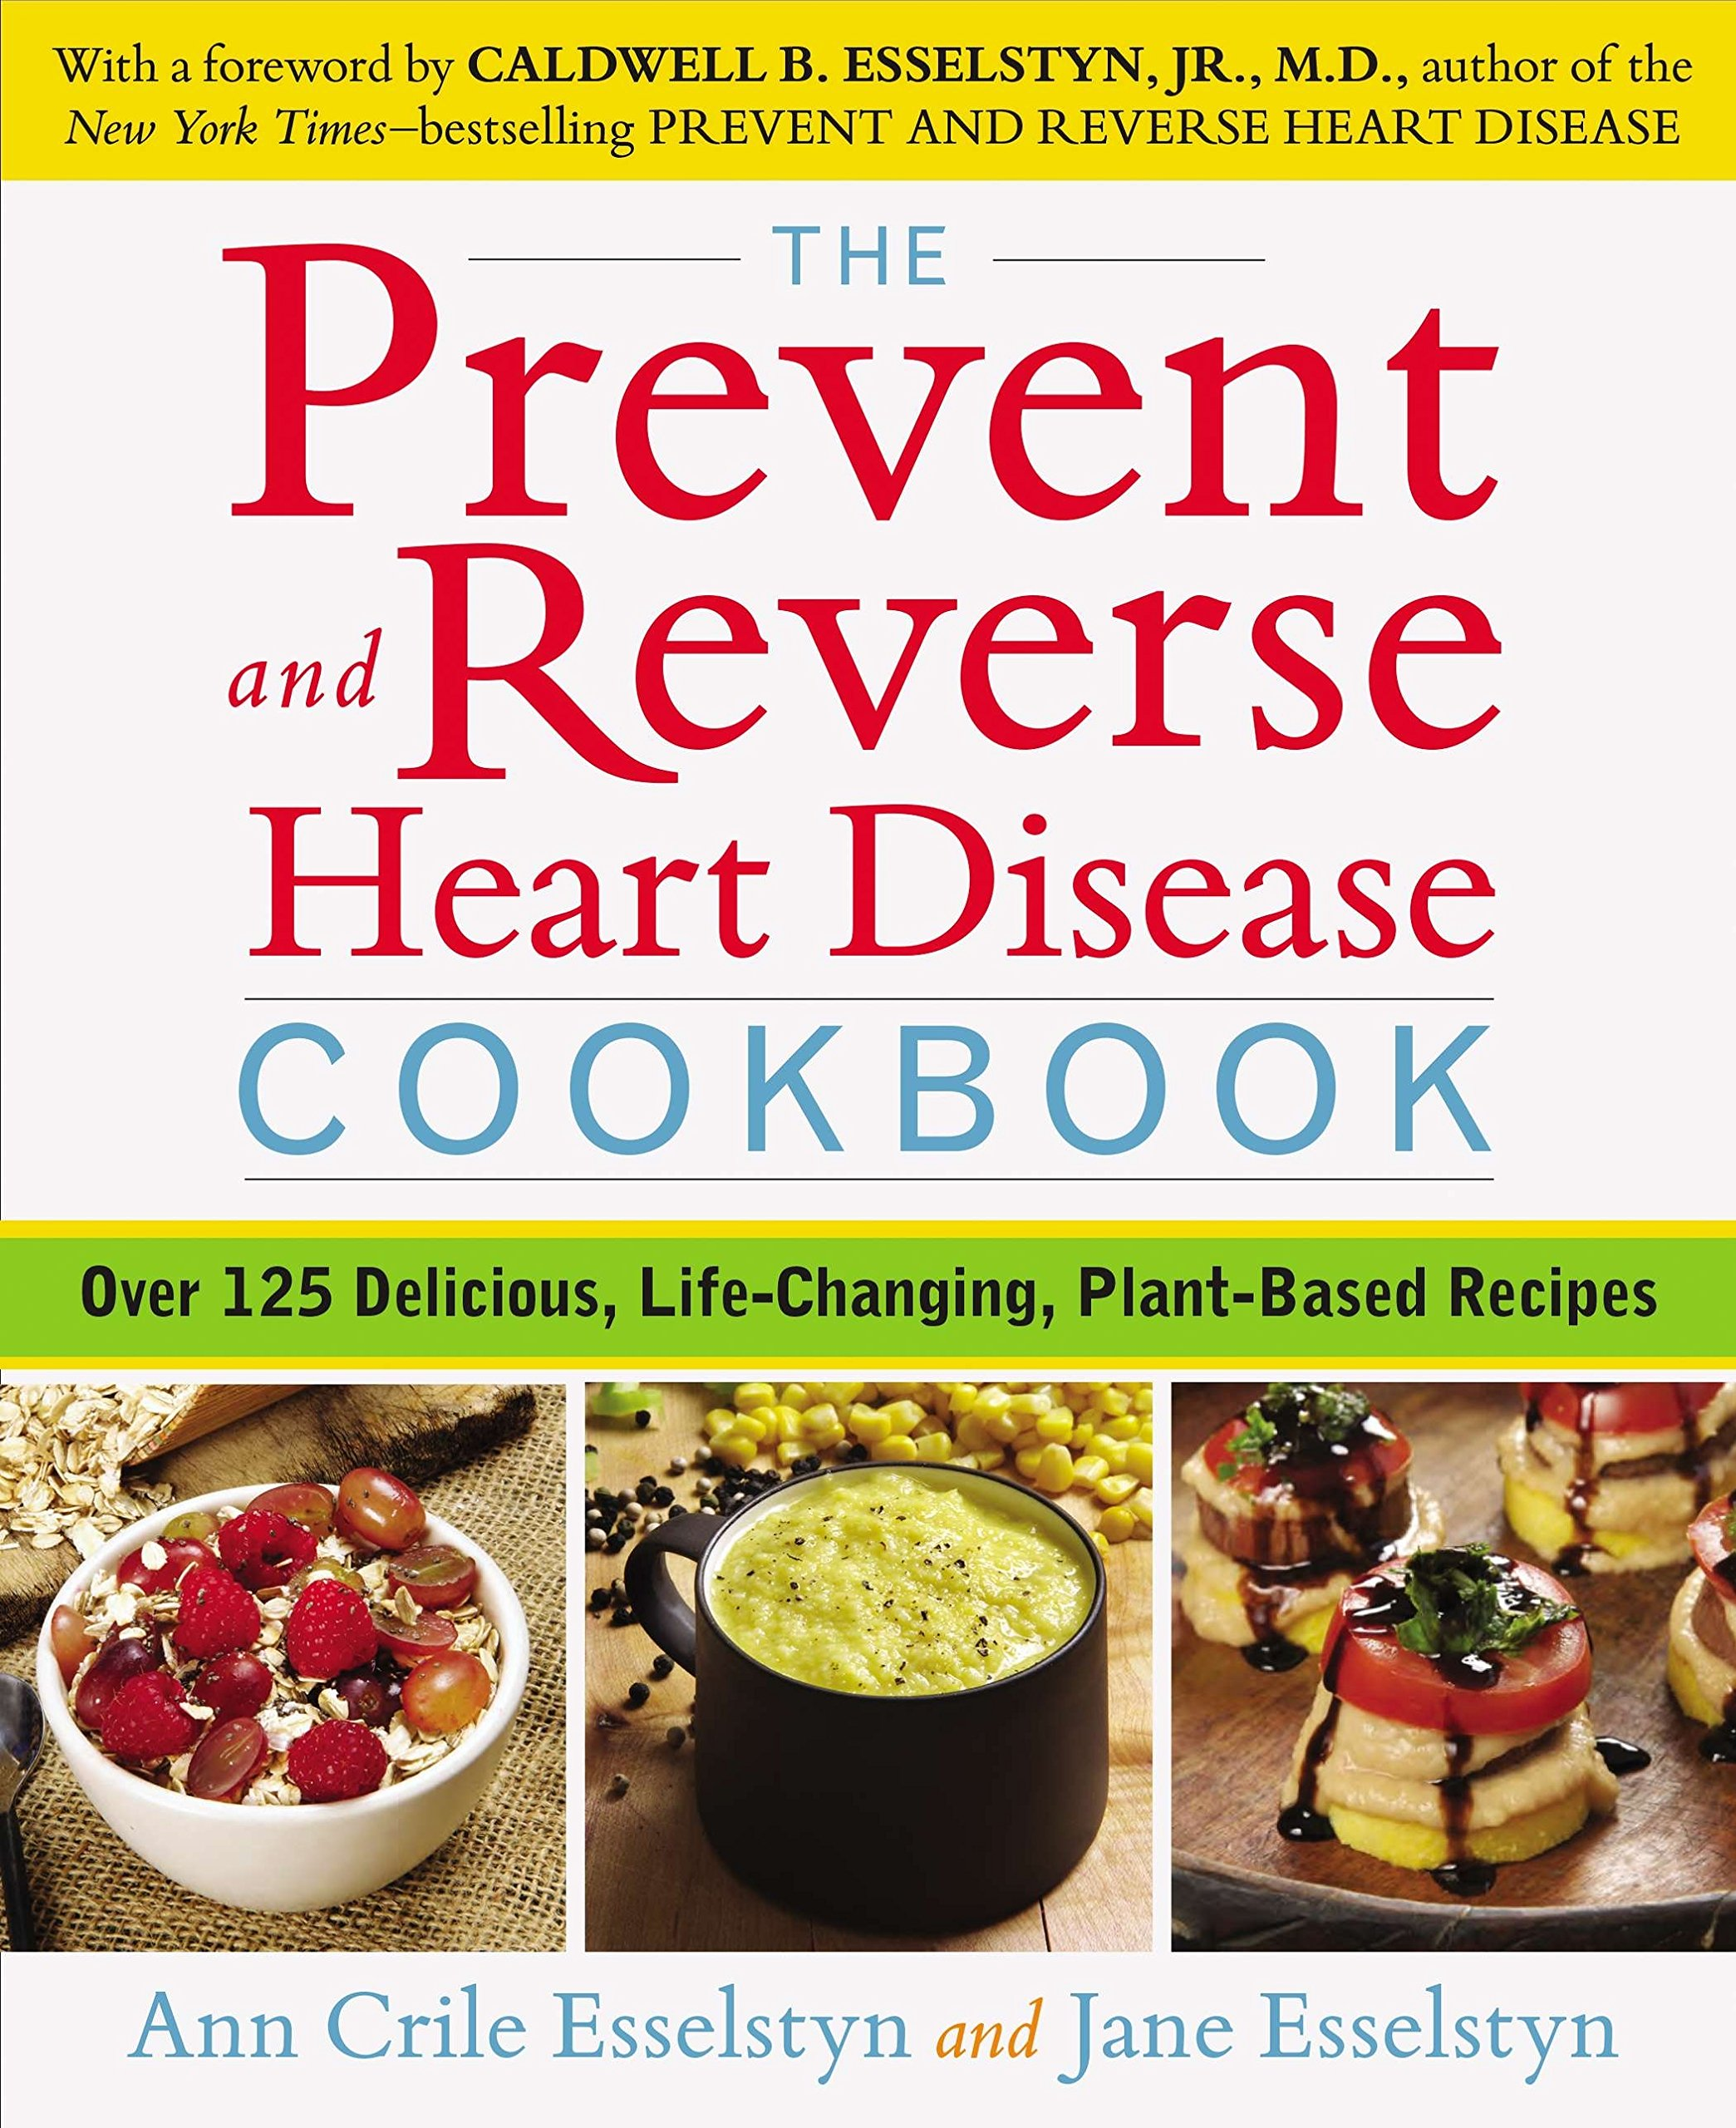 The Prevent and Reverse Heart Disease Cookbook: Over 125 Delicious, Life-Changing, Plant-Based Recipes by WaterBrook Press (Image #2)